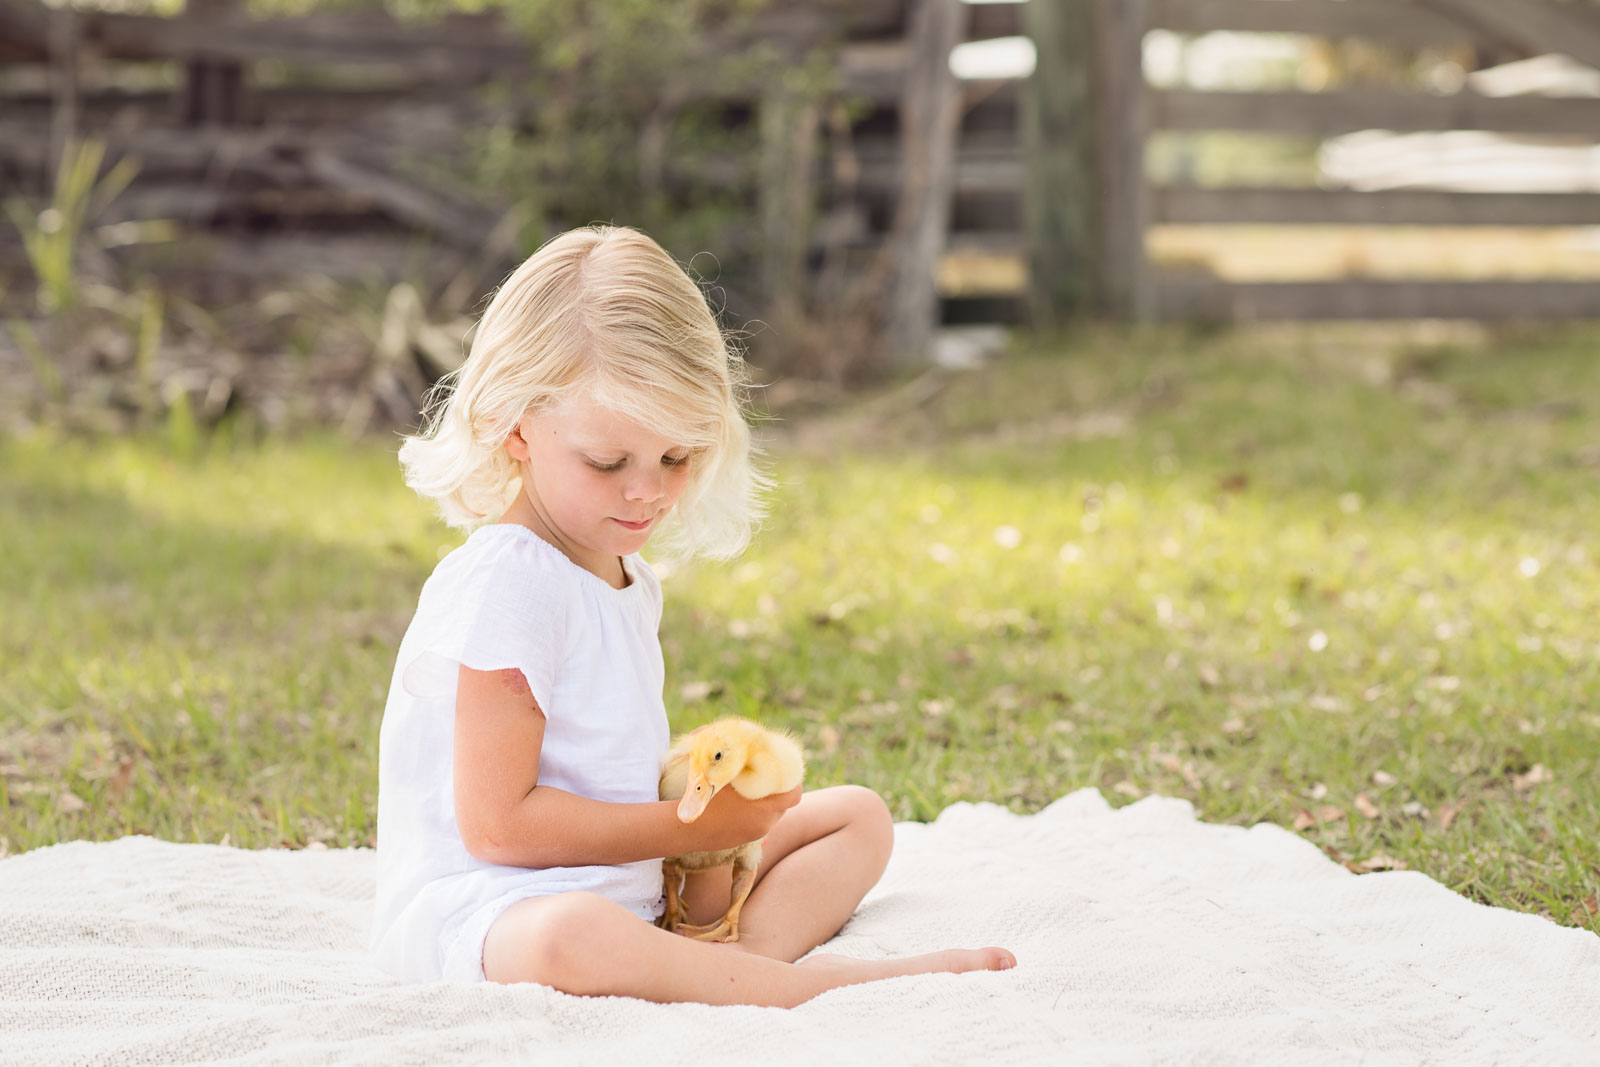 photo-sessions-children-animals-01.jpg